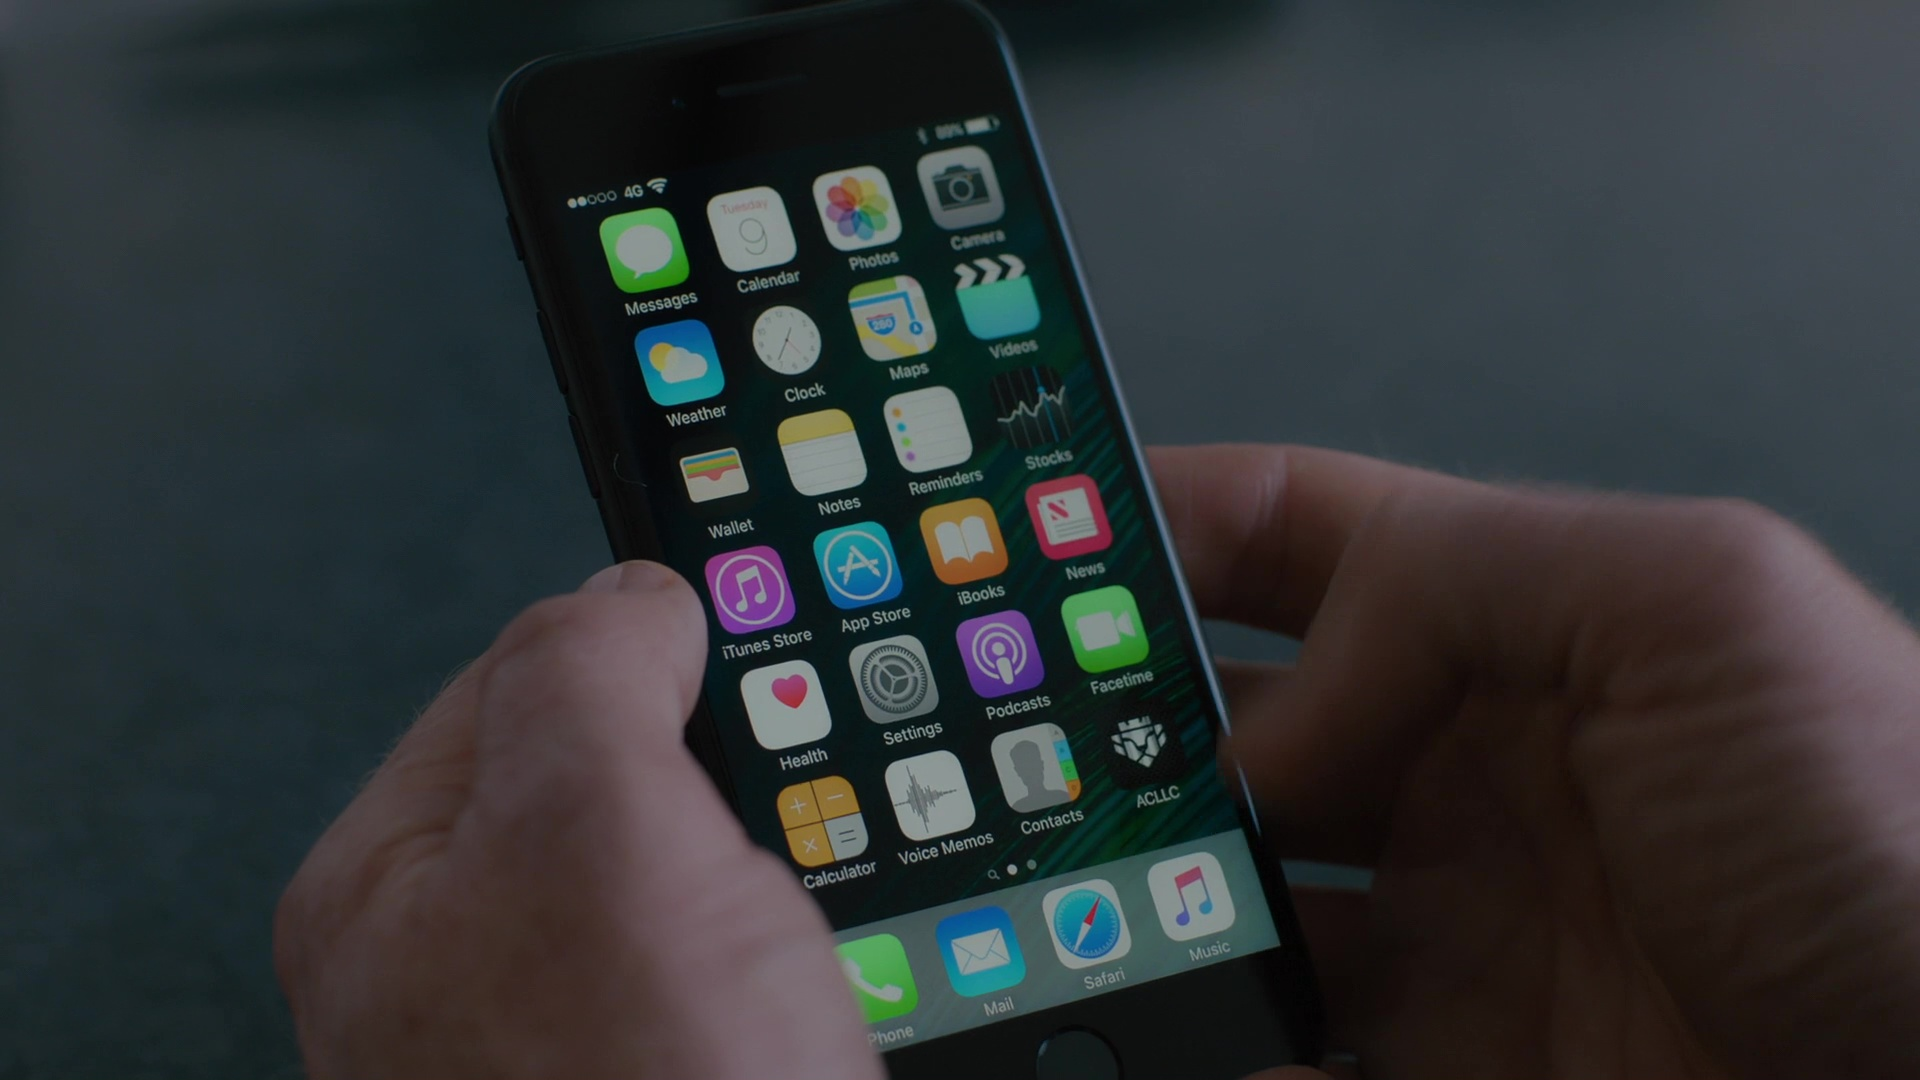 apple iphone 7 used by damian lewis in billions the wrong. Black Bedroom Furniture Sets. Home Design Ideas